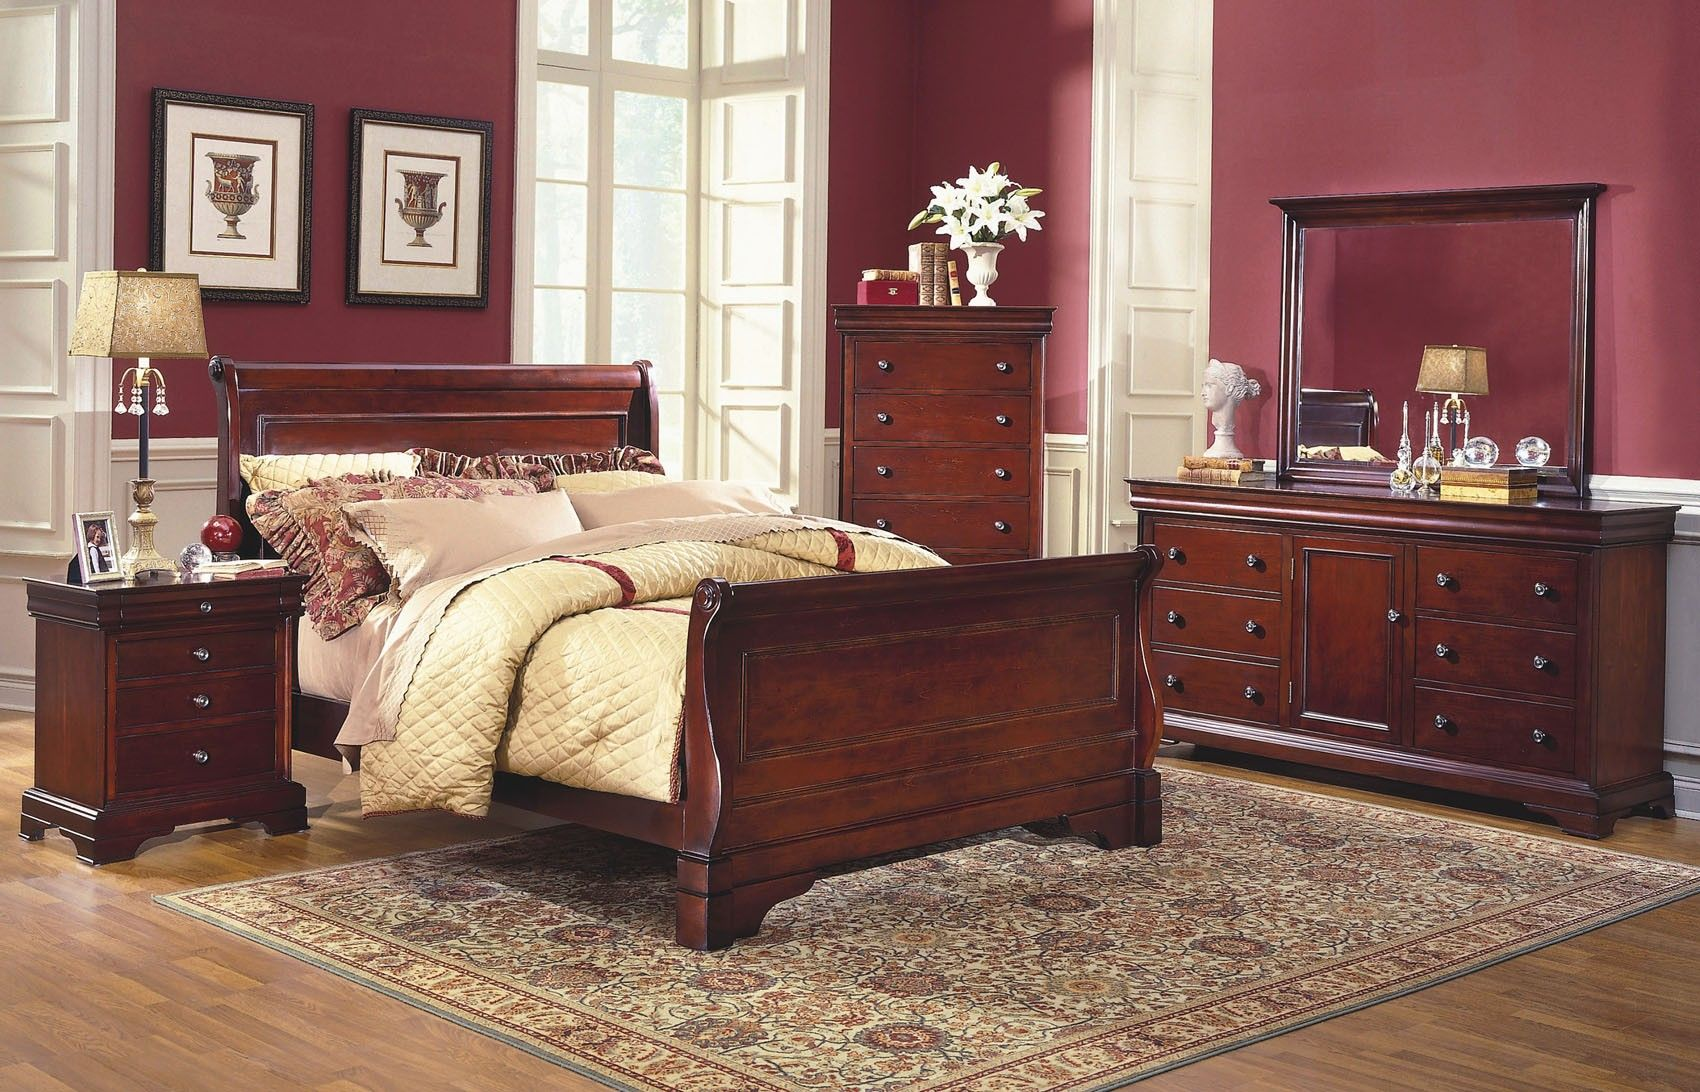 Feeling Great With Queen Bedroom Sets Home Design u Hairstyle